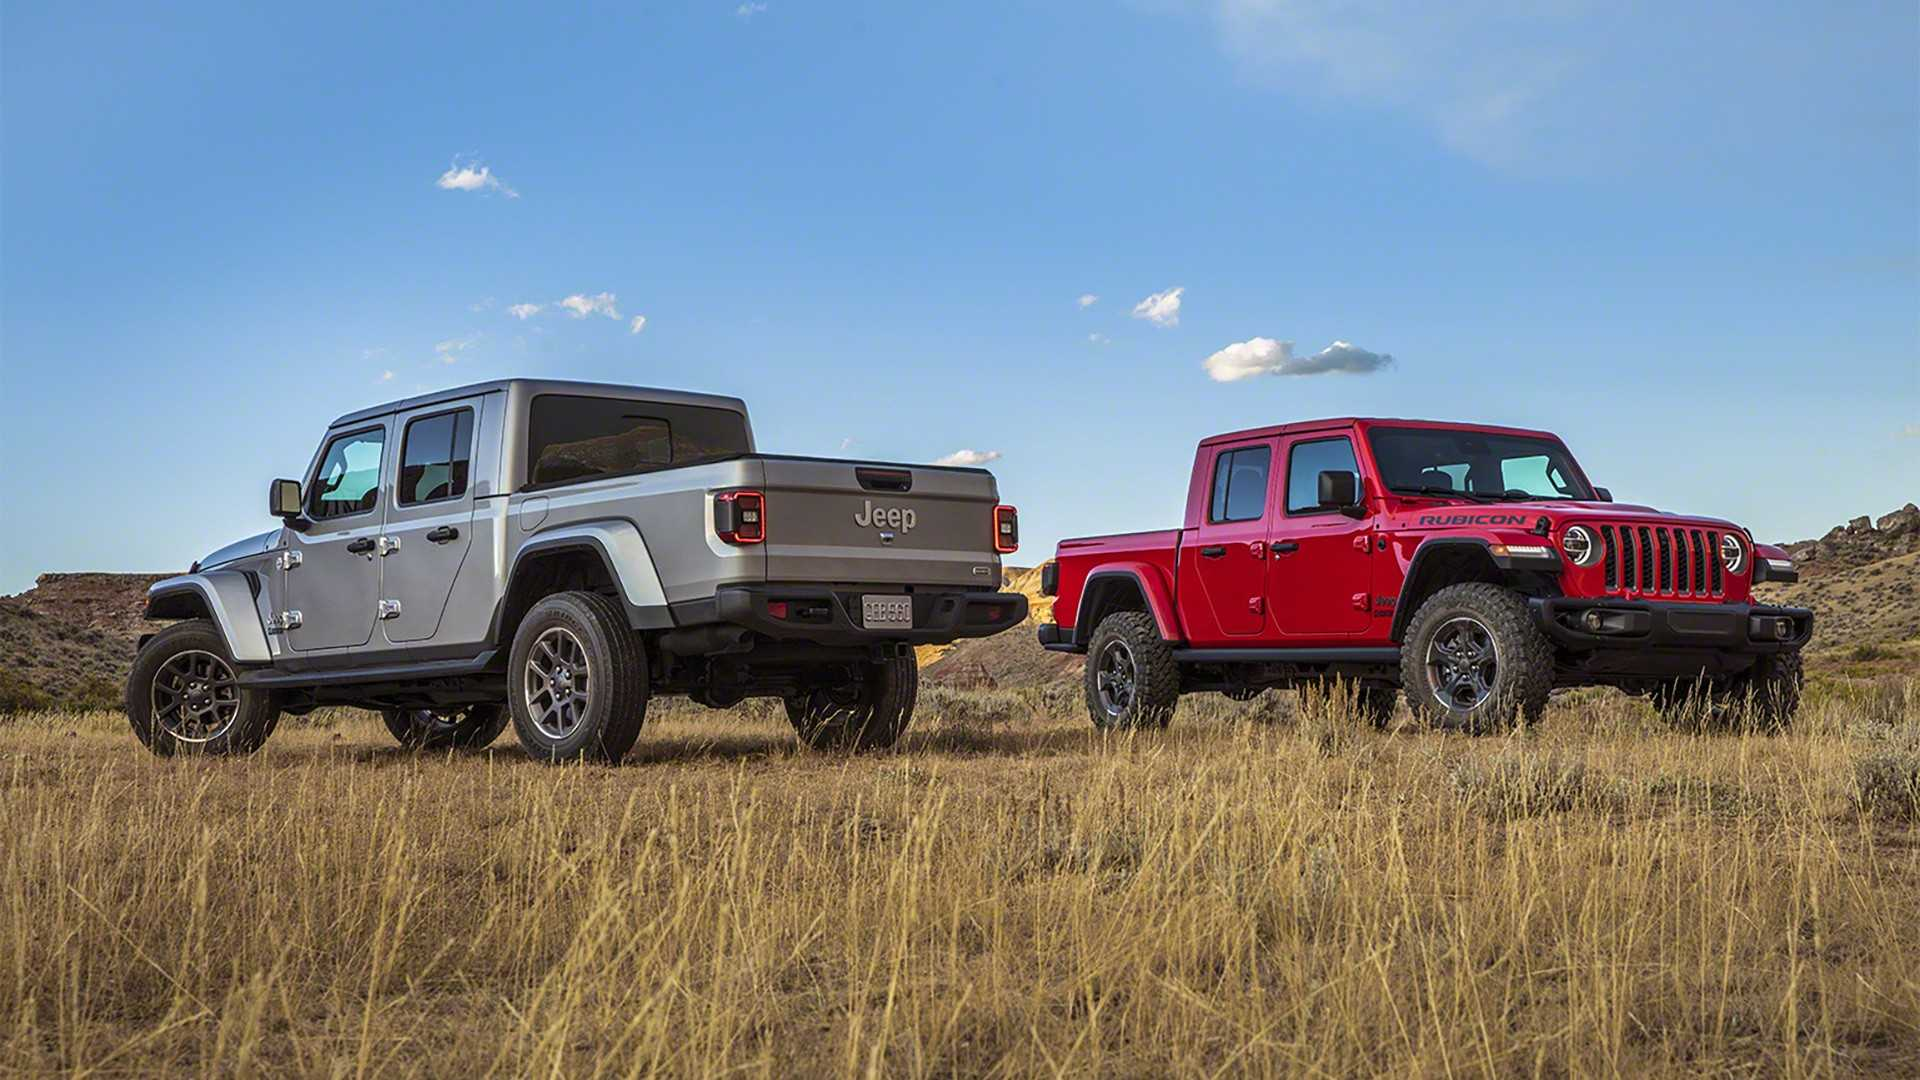 Jeep Gladiator Gets Insanely Low $143 Per Month Lease Deal